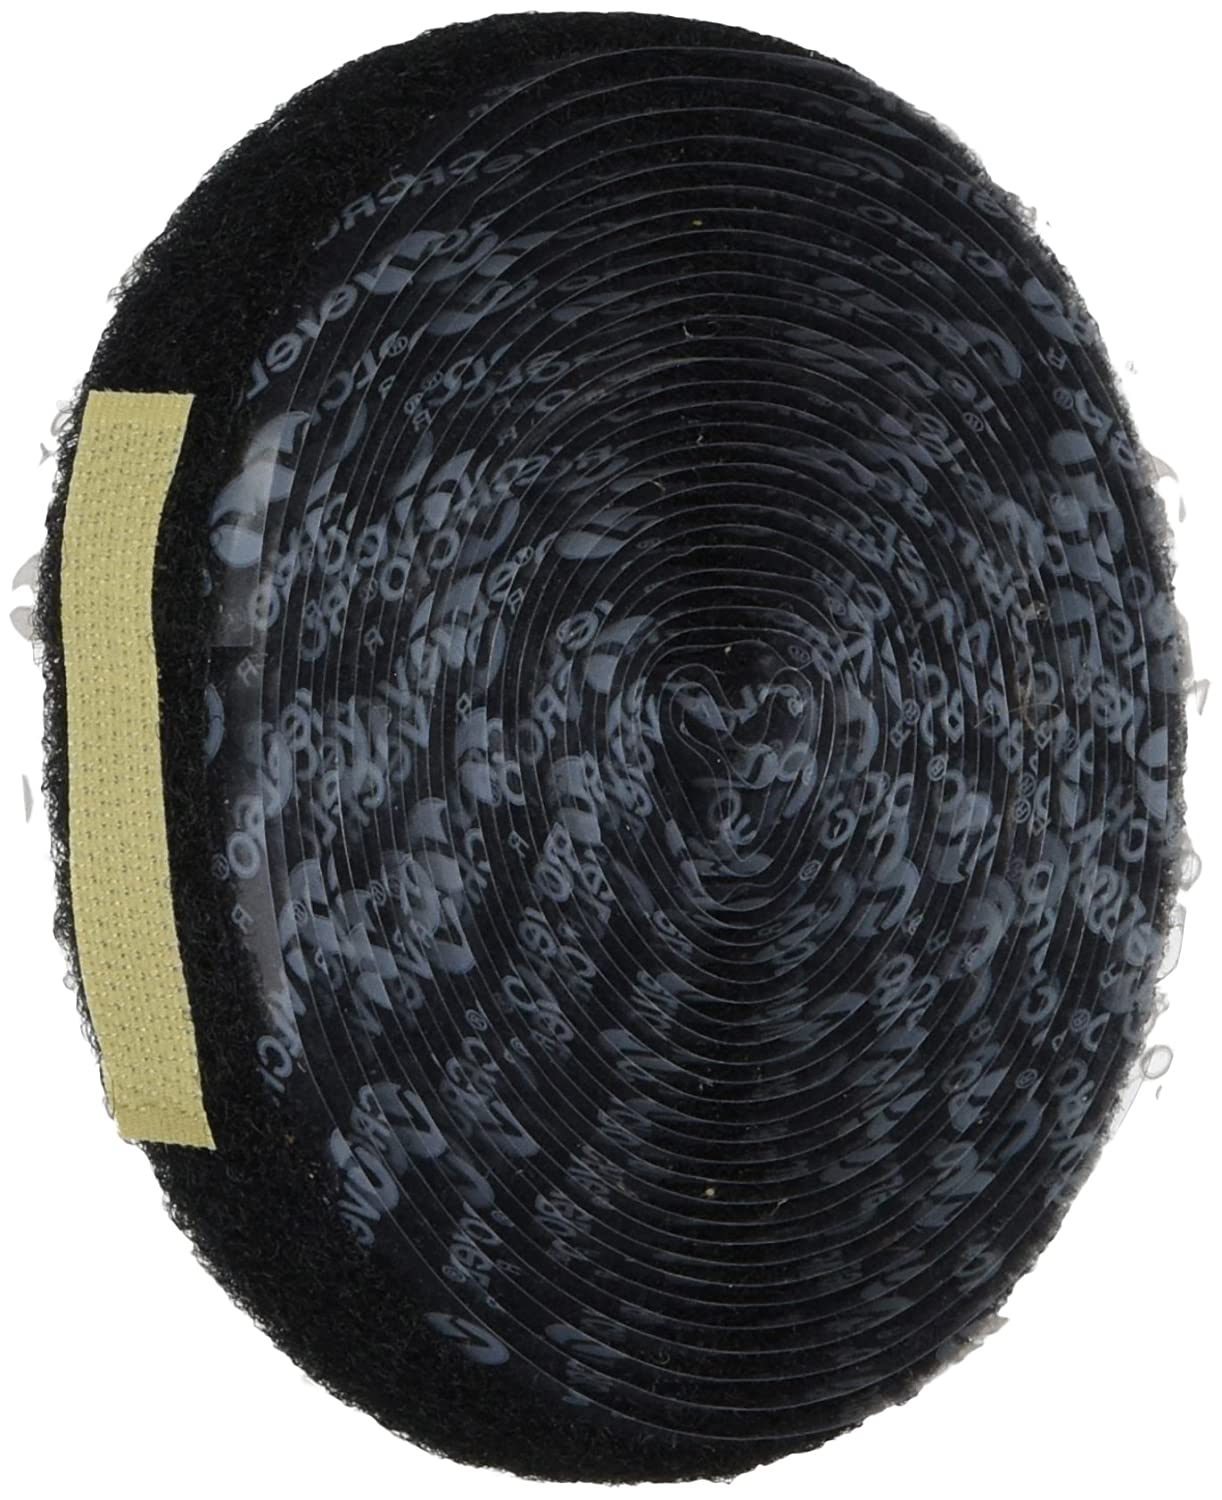 MJ May Memphis New Shipping Free Shipping Mall 1001-AP-PSA L-15 Velcro Brand PSA Loop Wide 0172 1 2